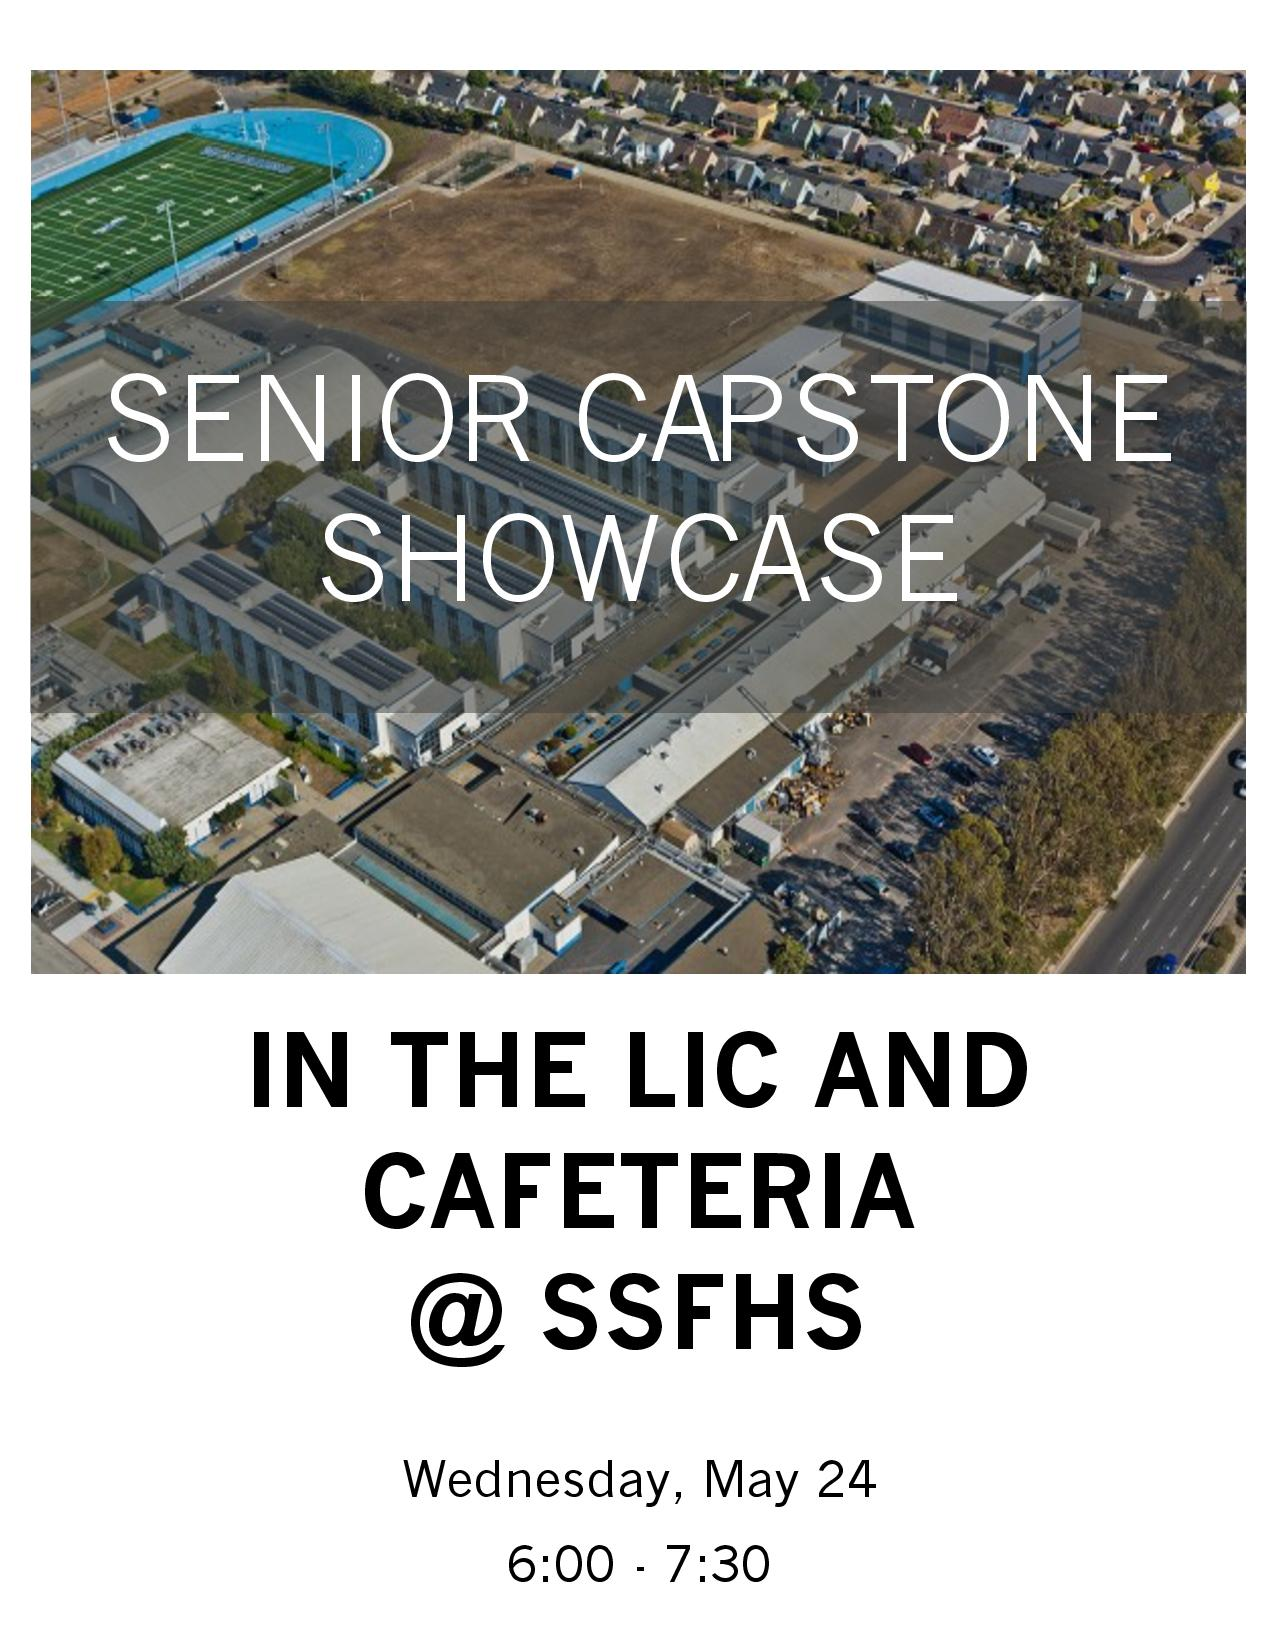 Public Invited to South San Francisco High School Senior Capstone Showcase May 24th